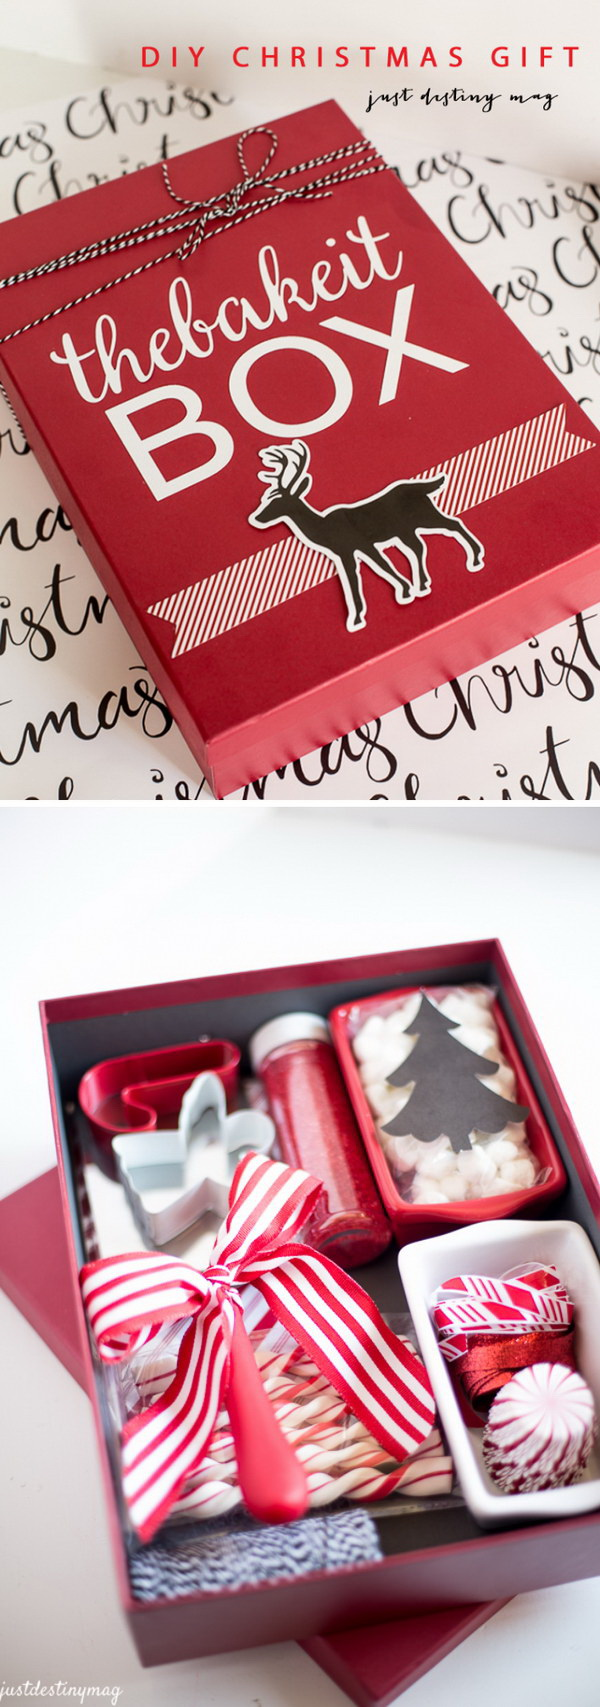 "DIY Christmas ""Bake It Box"". This little ""bake it box"" is super simple to put together. You can make it custom by color or by supplies!"